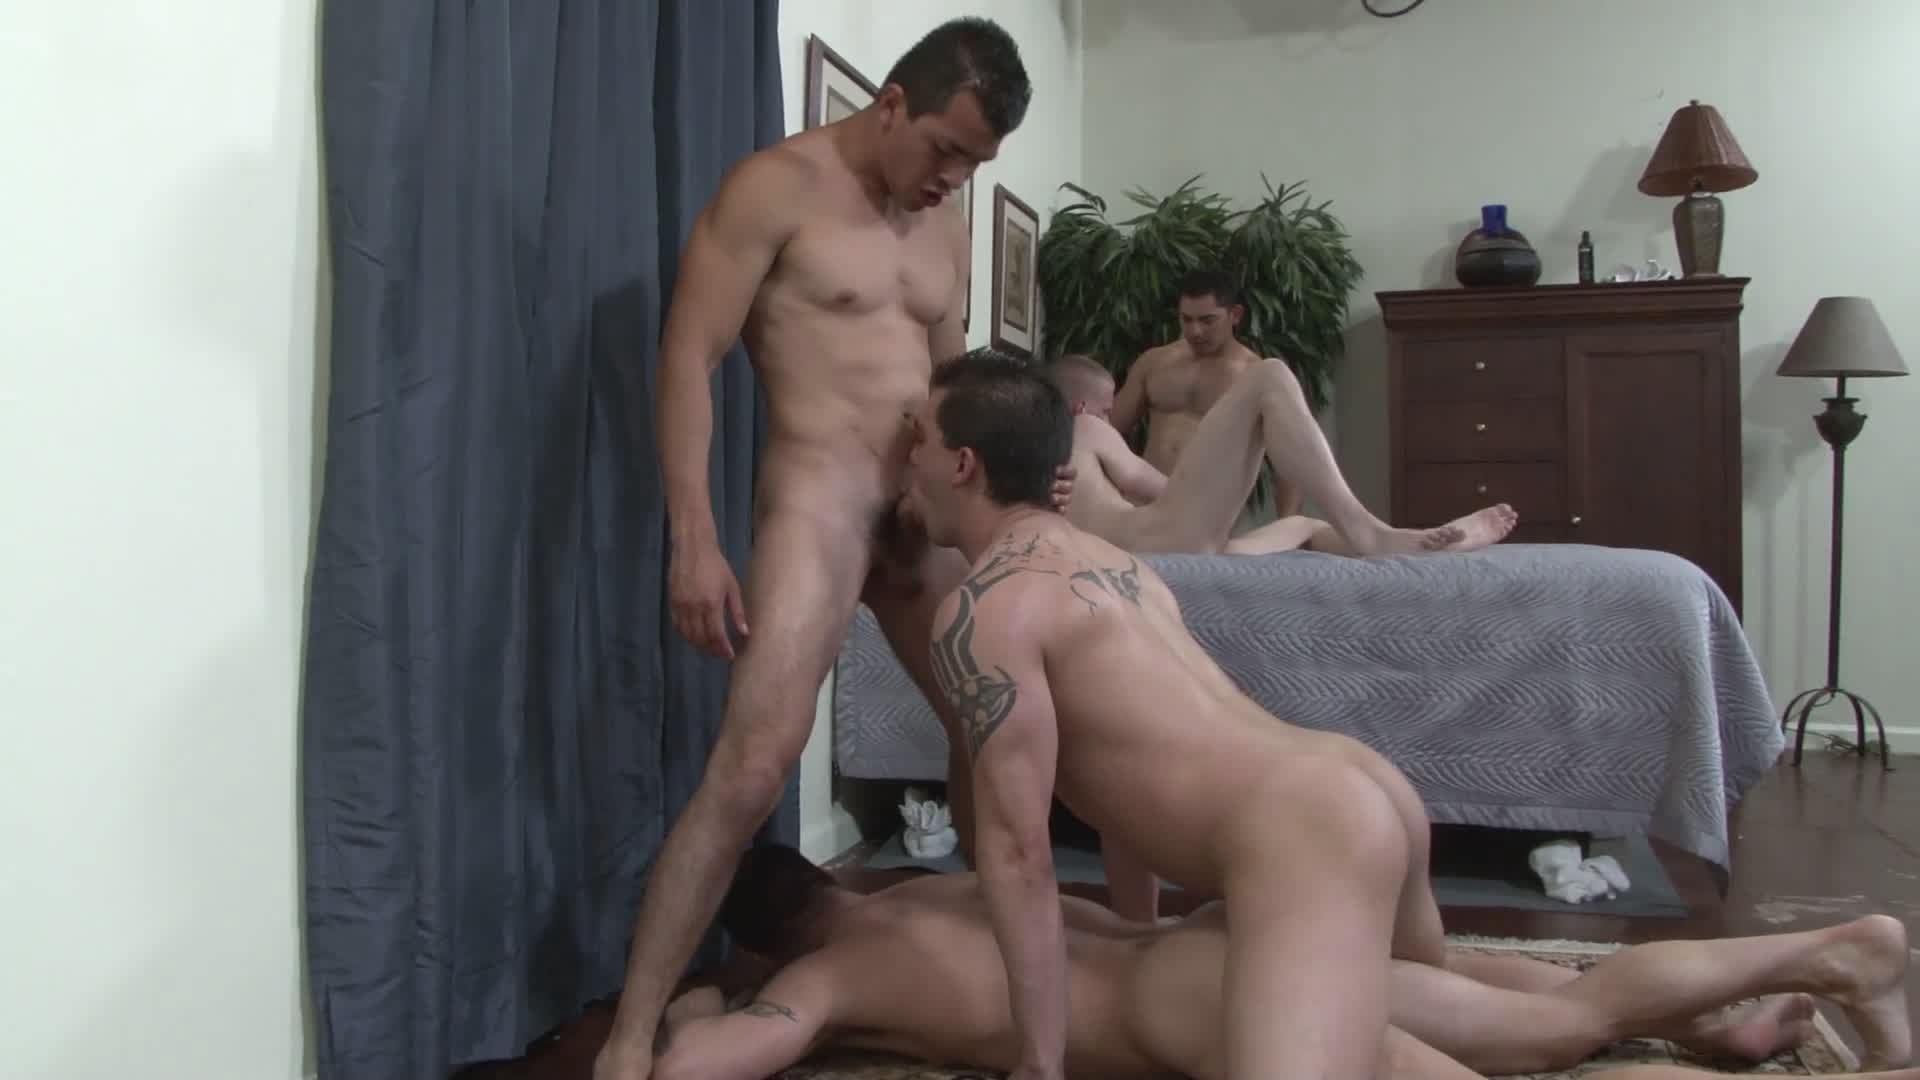 Another Bareback Orgy Xvideo gay